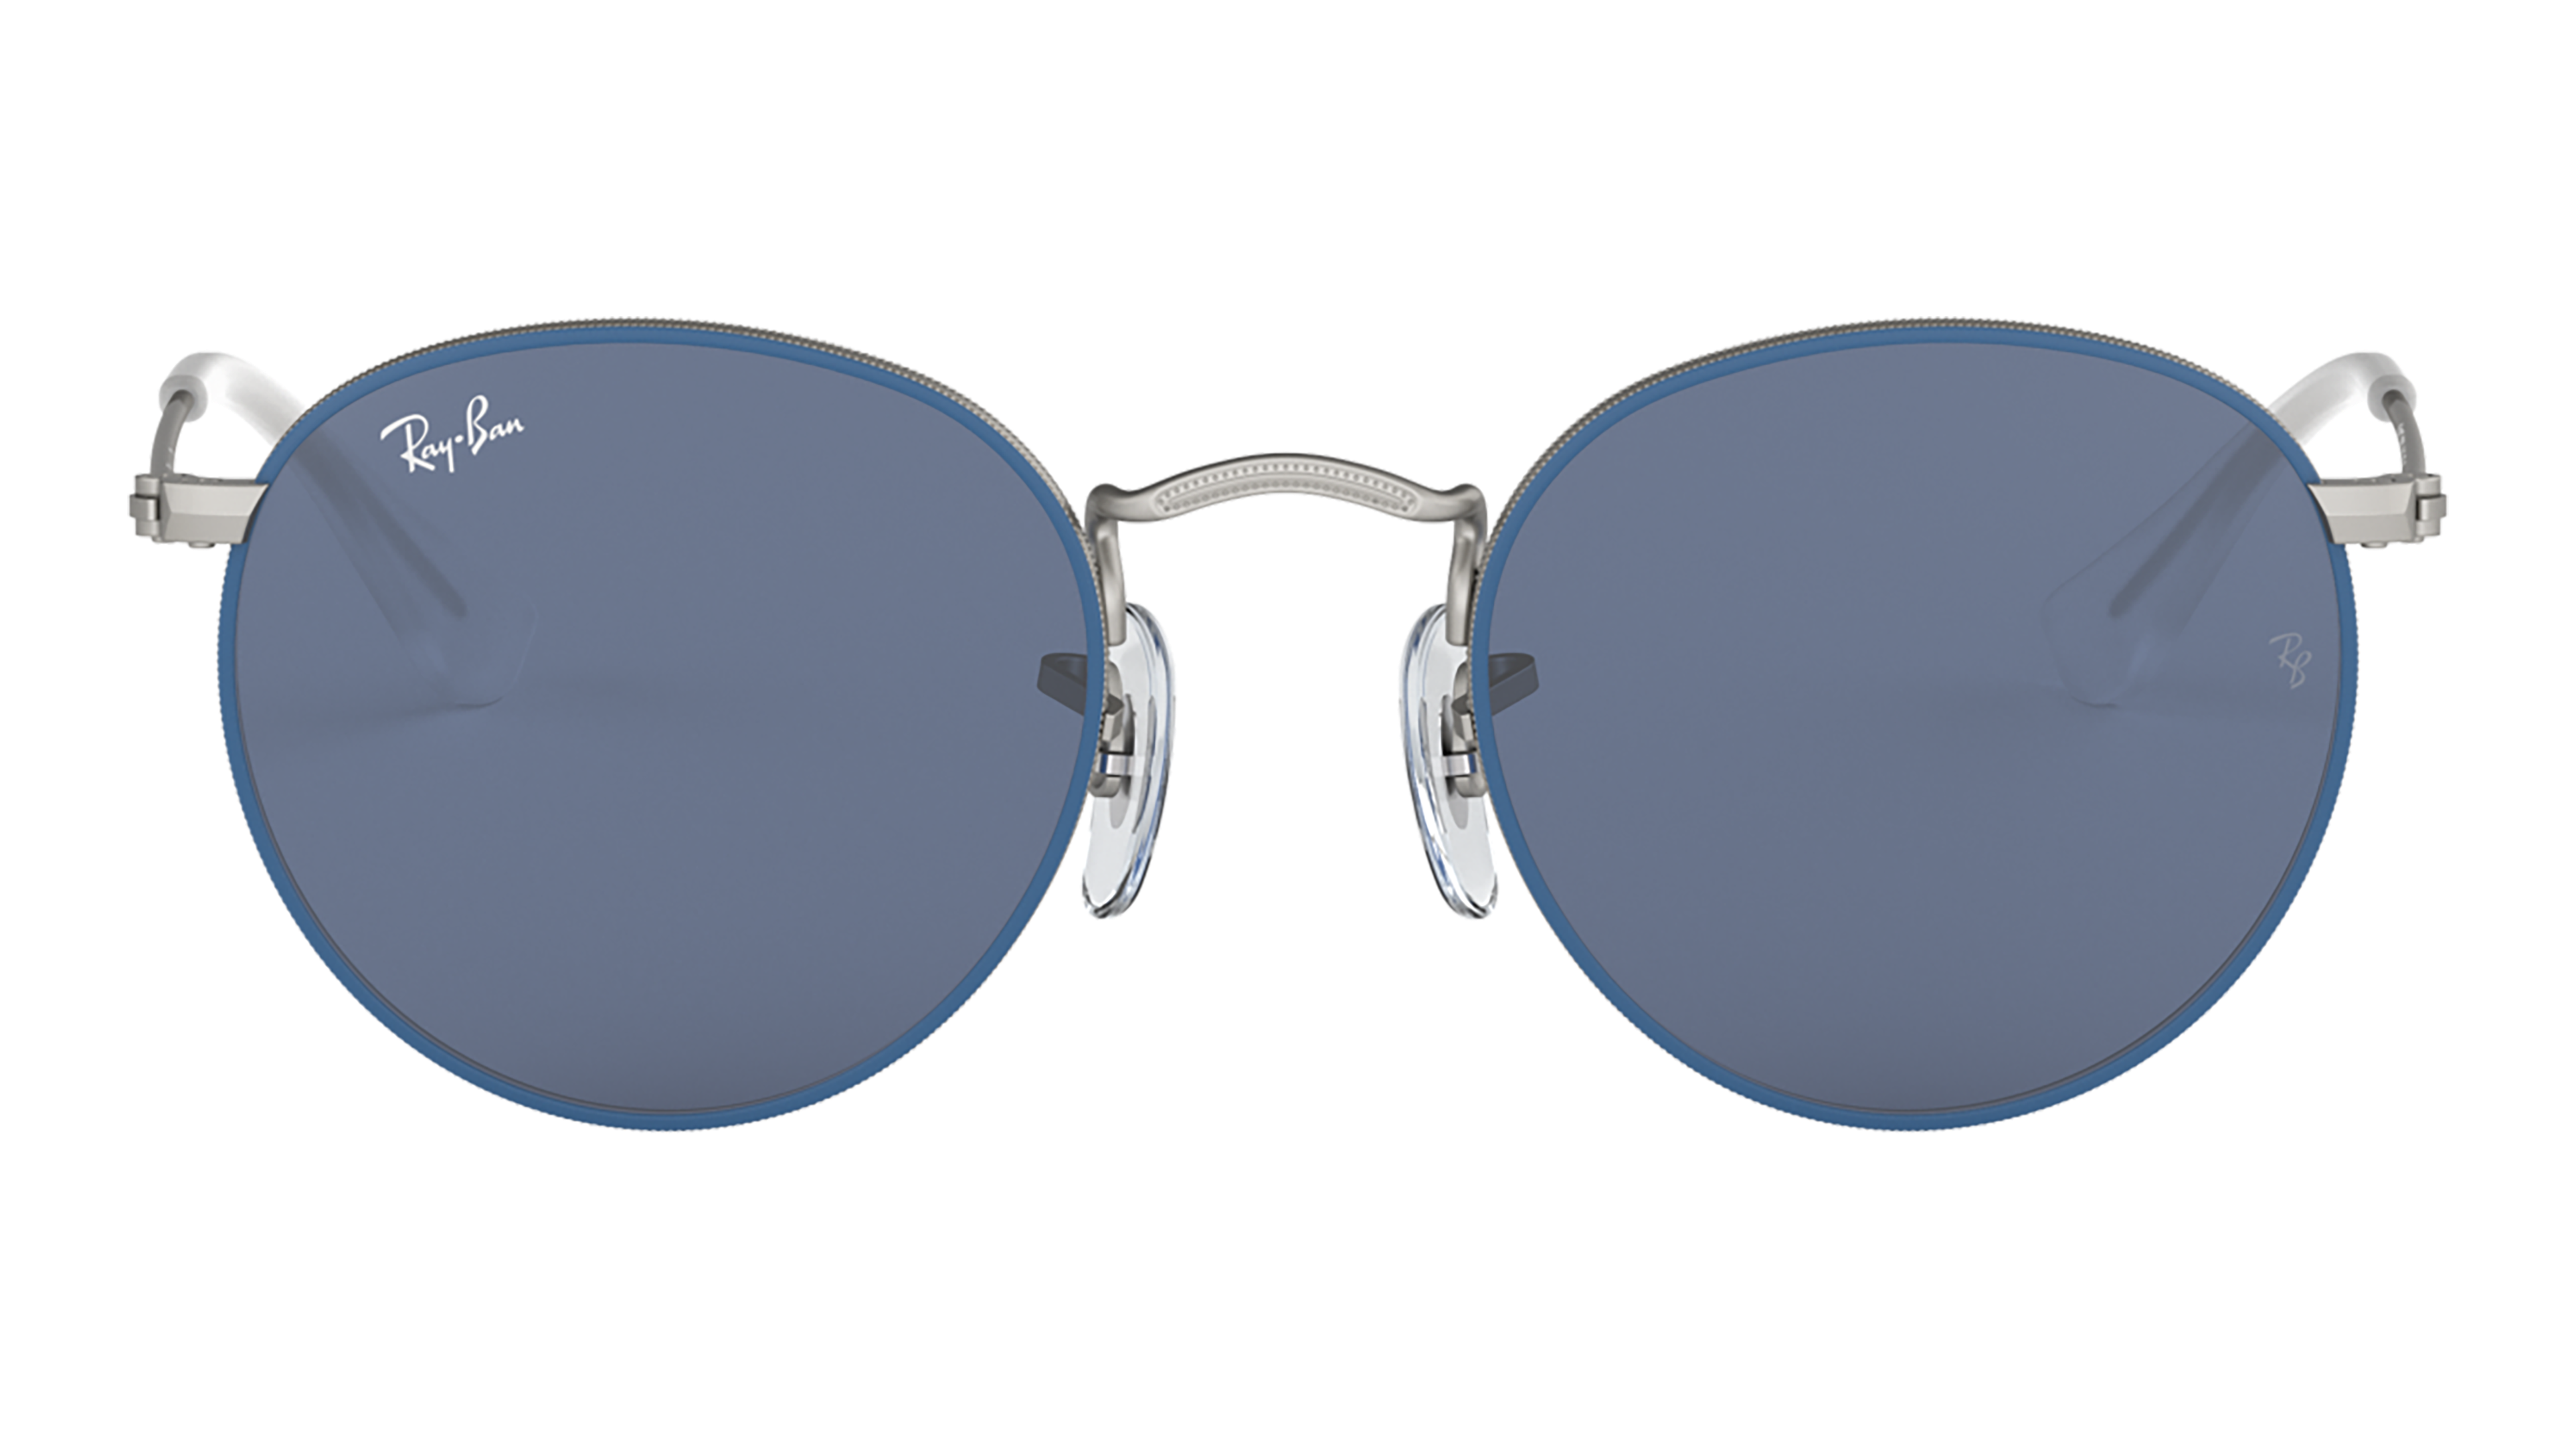 Front Ray-Ban Ray-Ban 0RJ9547S 280/80 44/19 Blauw, Zilver/Blauw